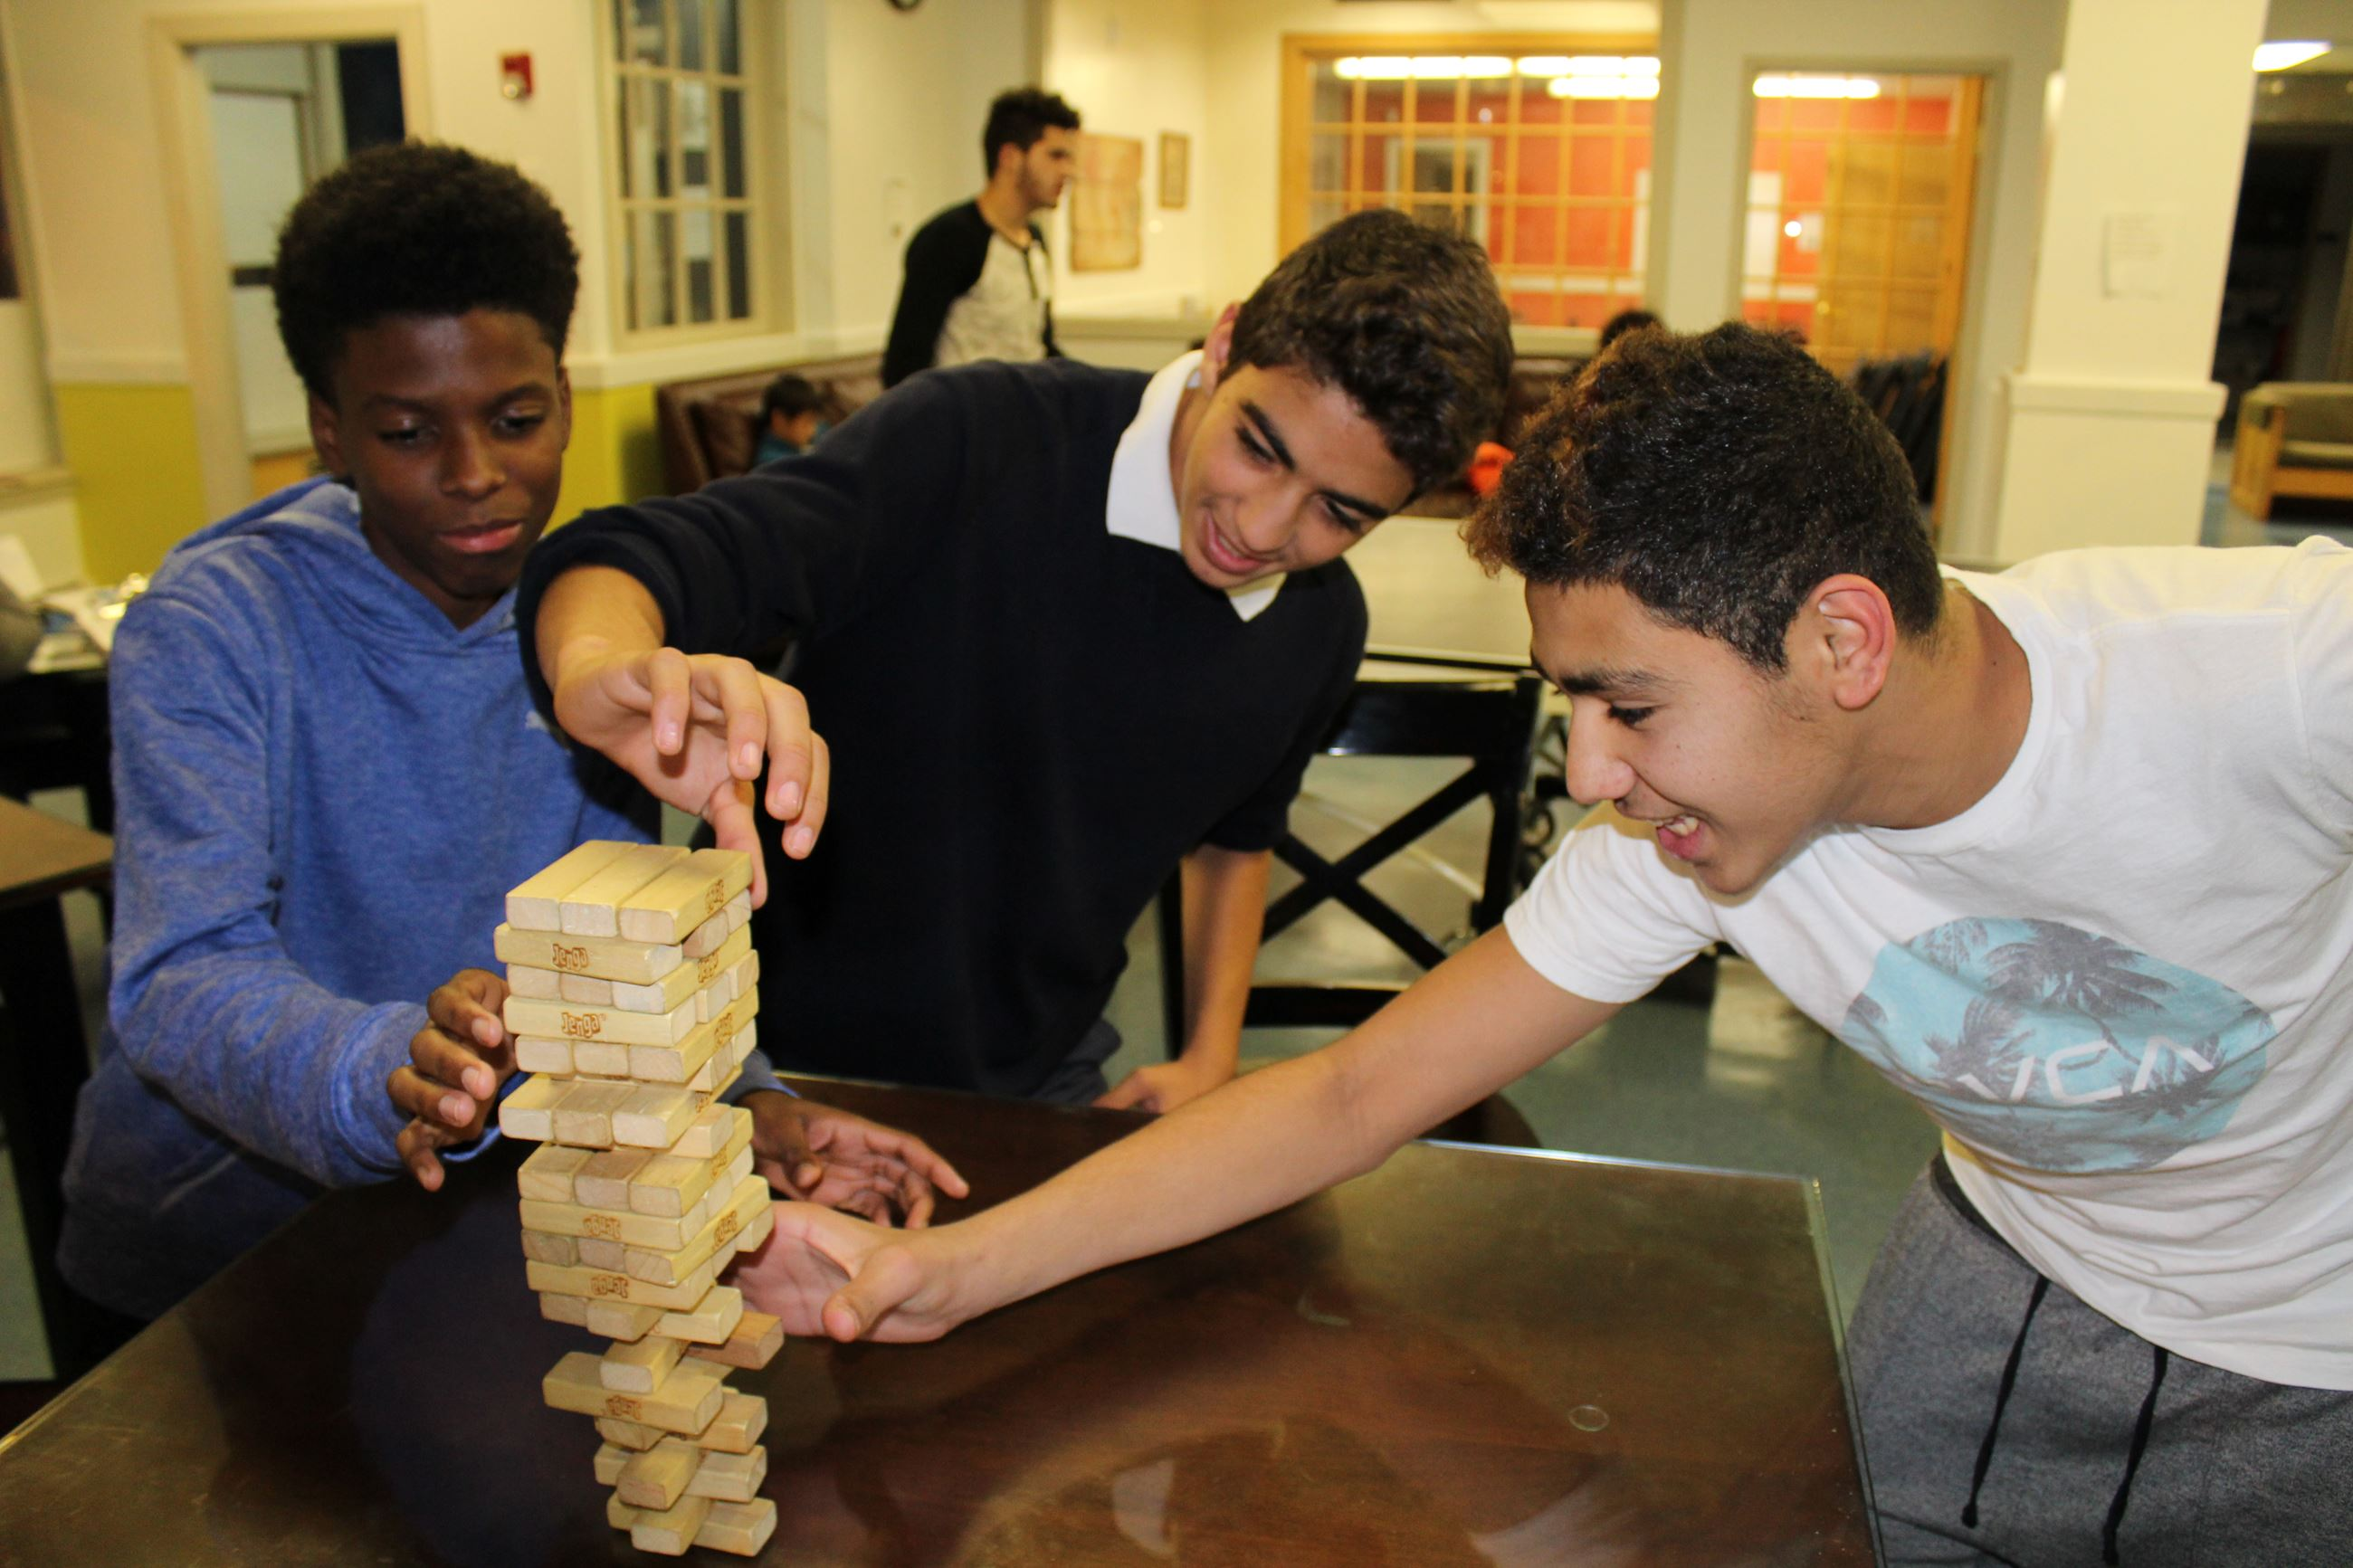 Teens playing Jenga